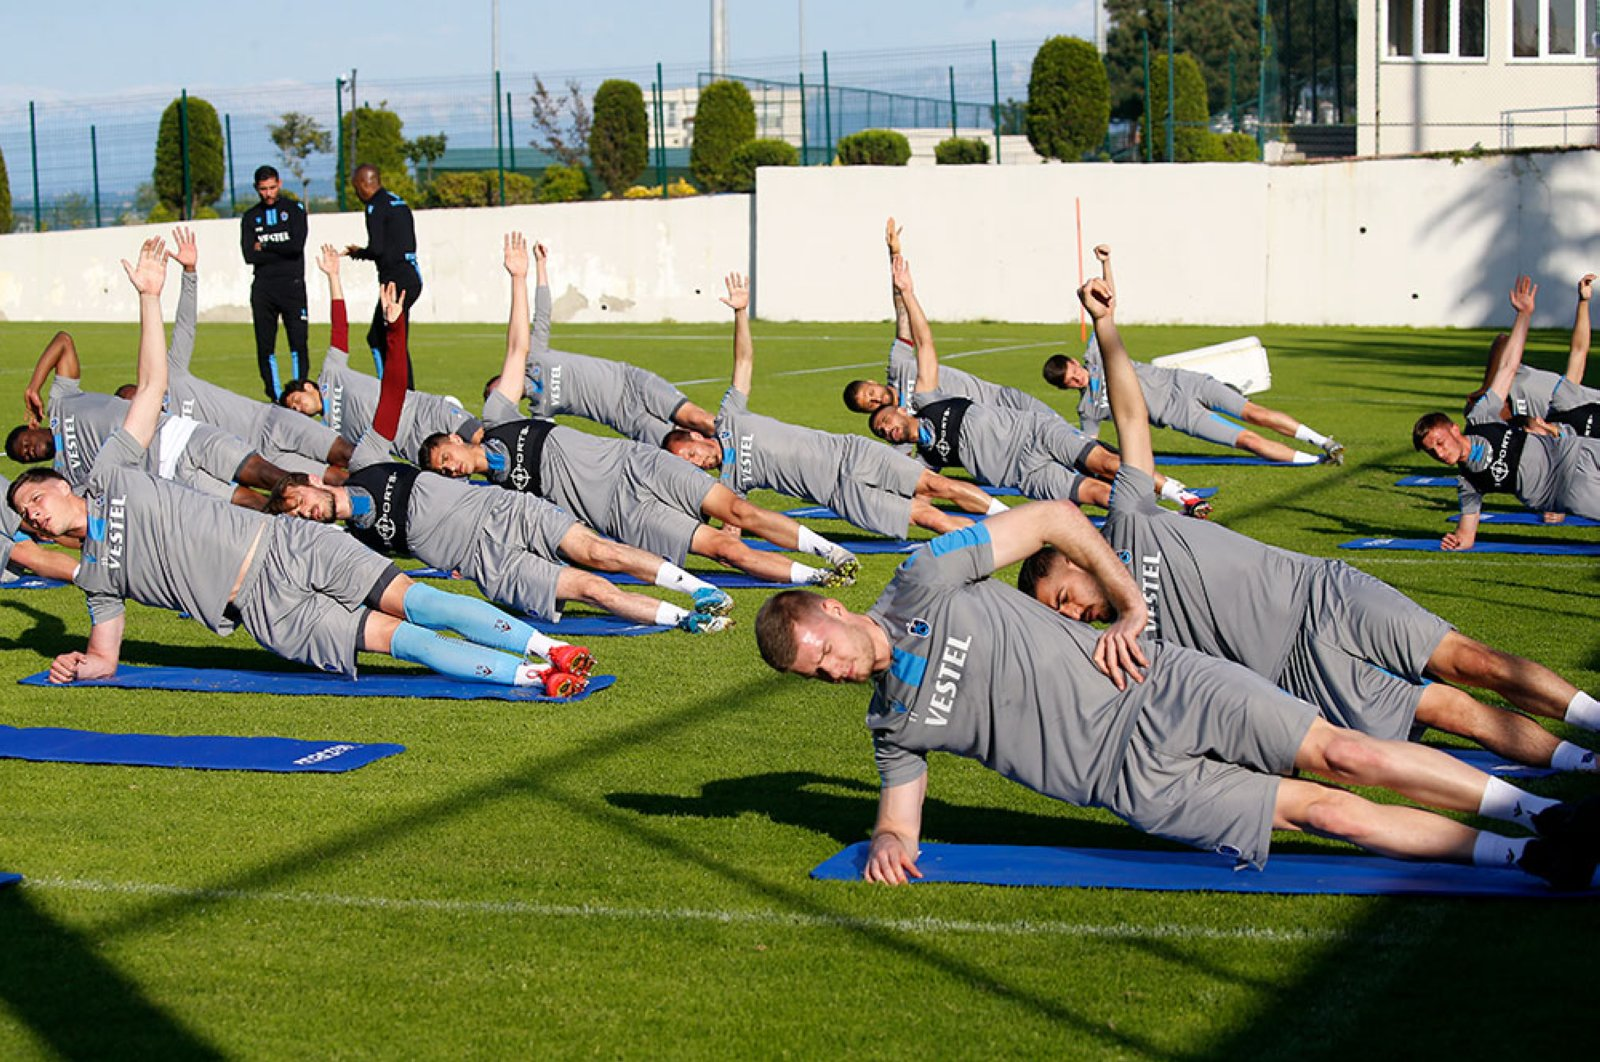 The current leader of the Super League Trabzonspor makes training as the league is expected to resume next month, May 12, 2020. (AA)